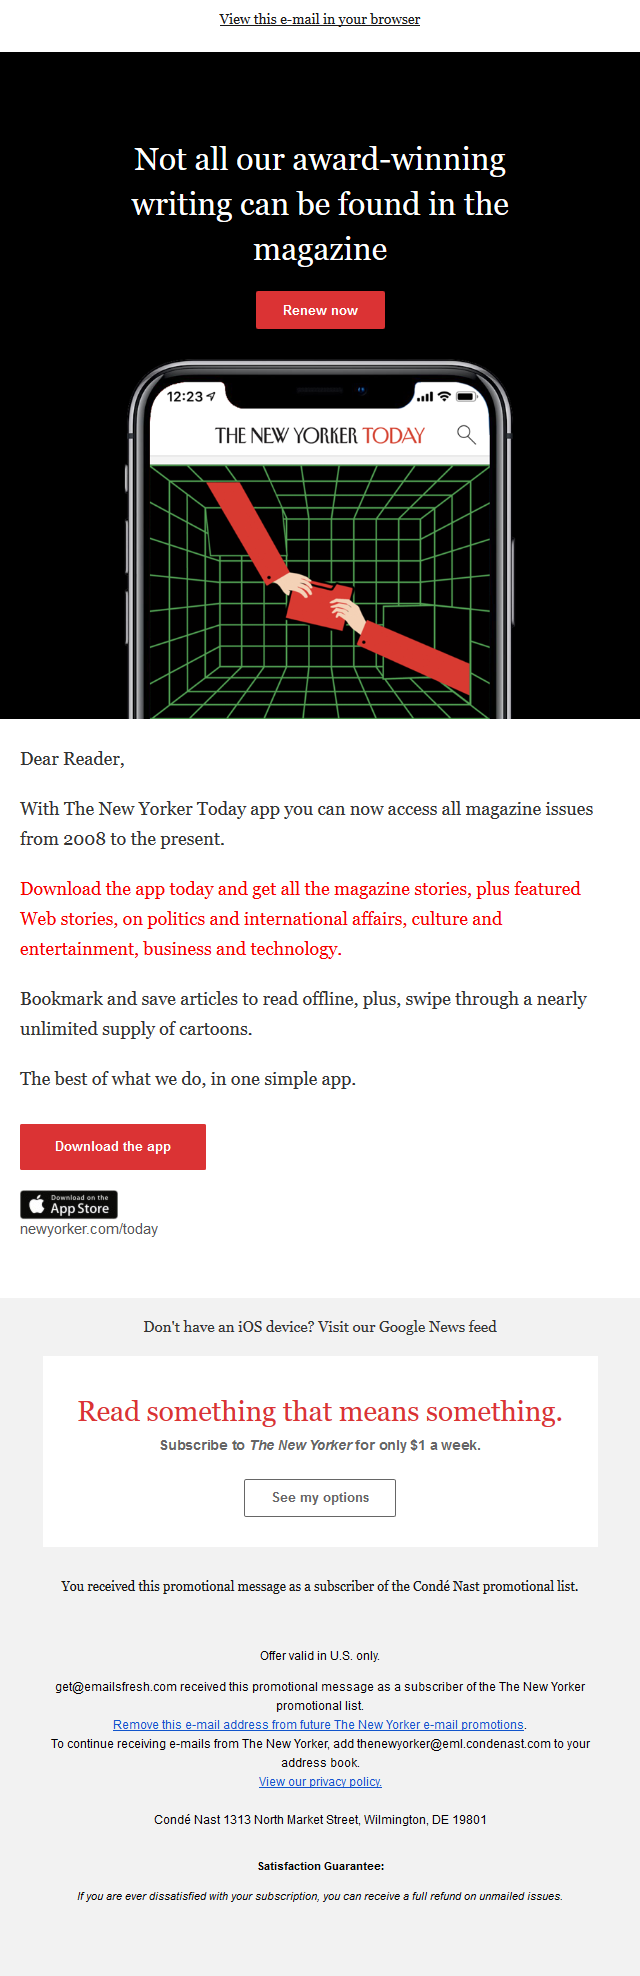 Download The New Yorker Today iOS App - the best of what we do, in one simple place.